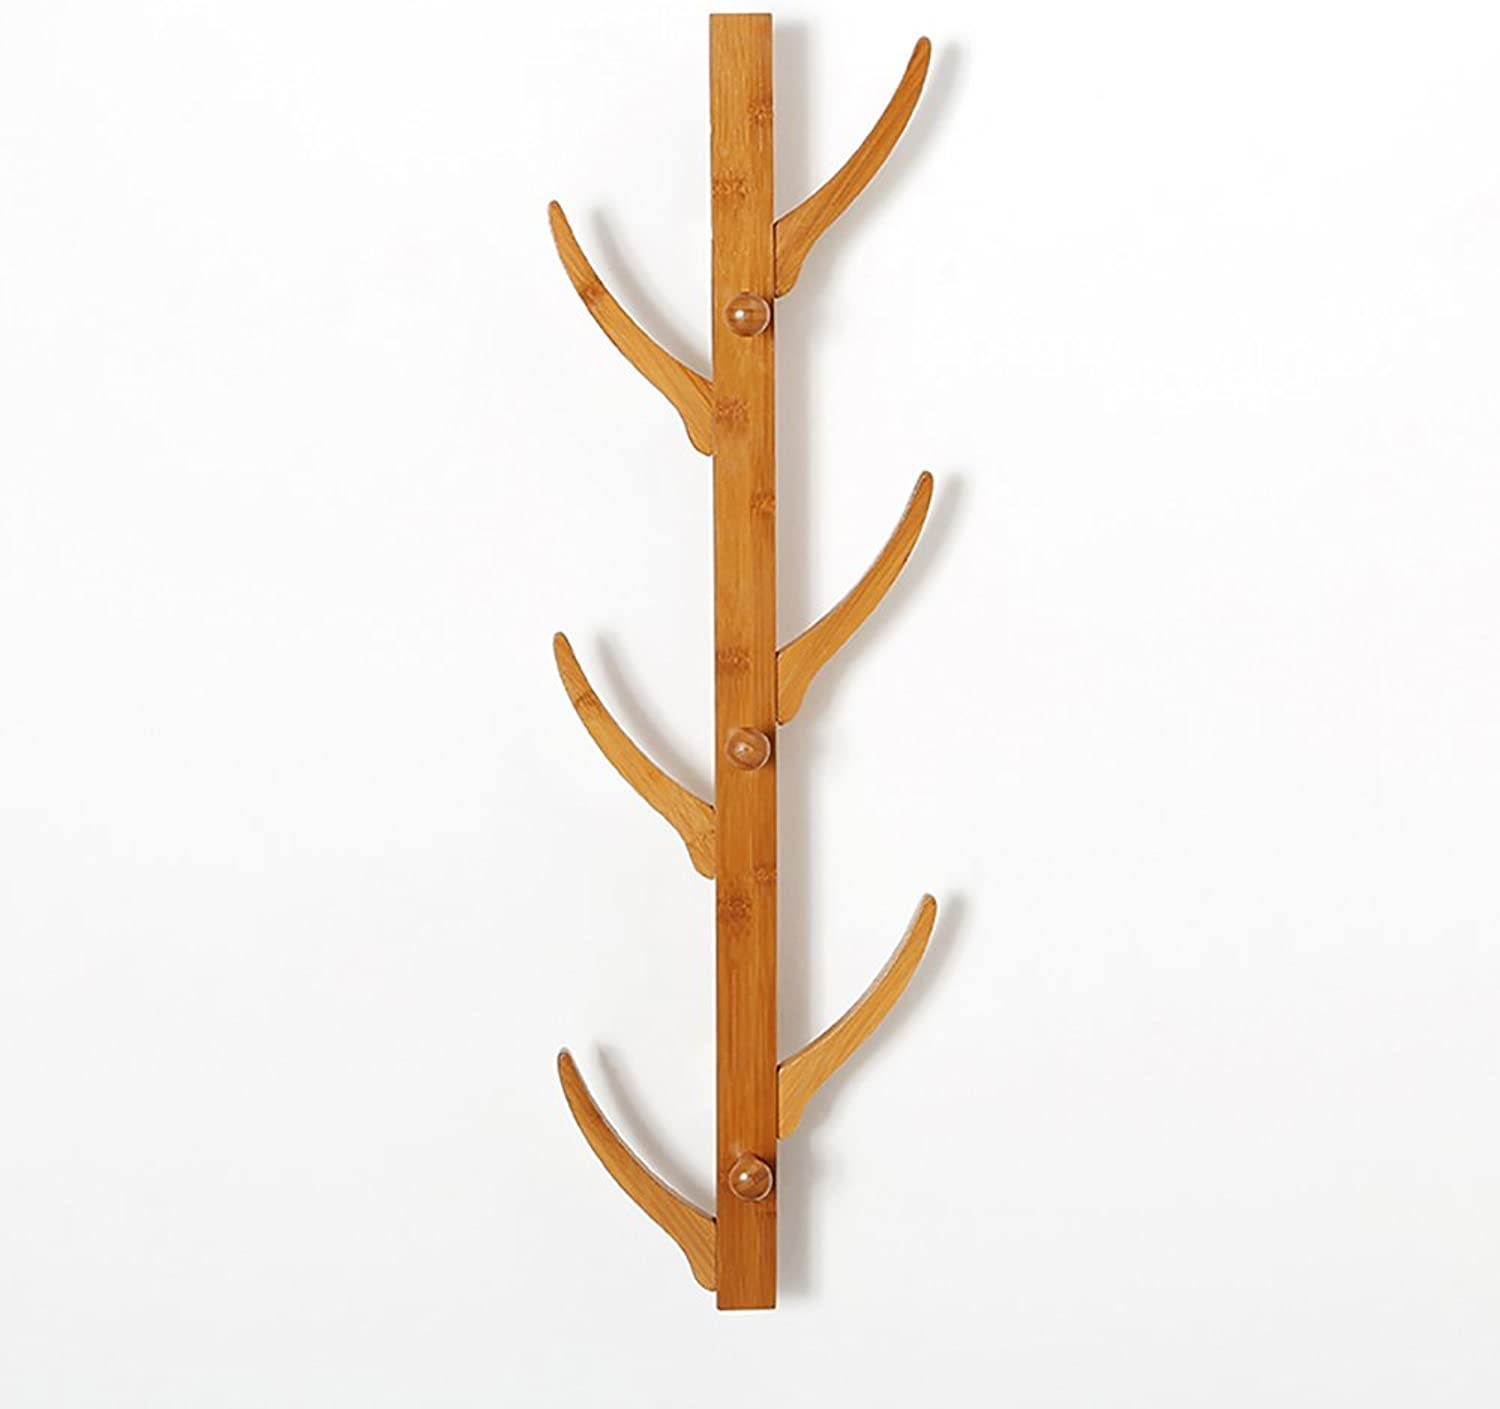 ZZHF yimaojia Creative Solid Wood Wall-Mounted Coat Rack Bedroom Living Room Hangers Simple Shelves (Size   A)